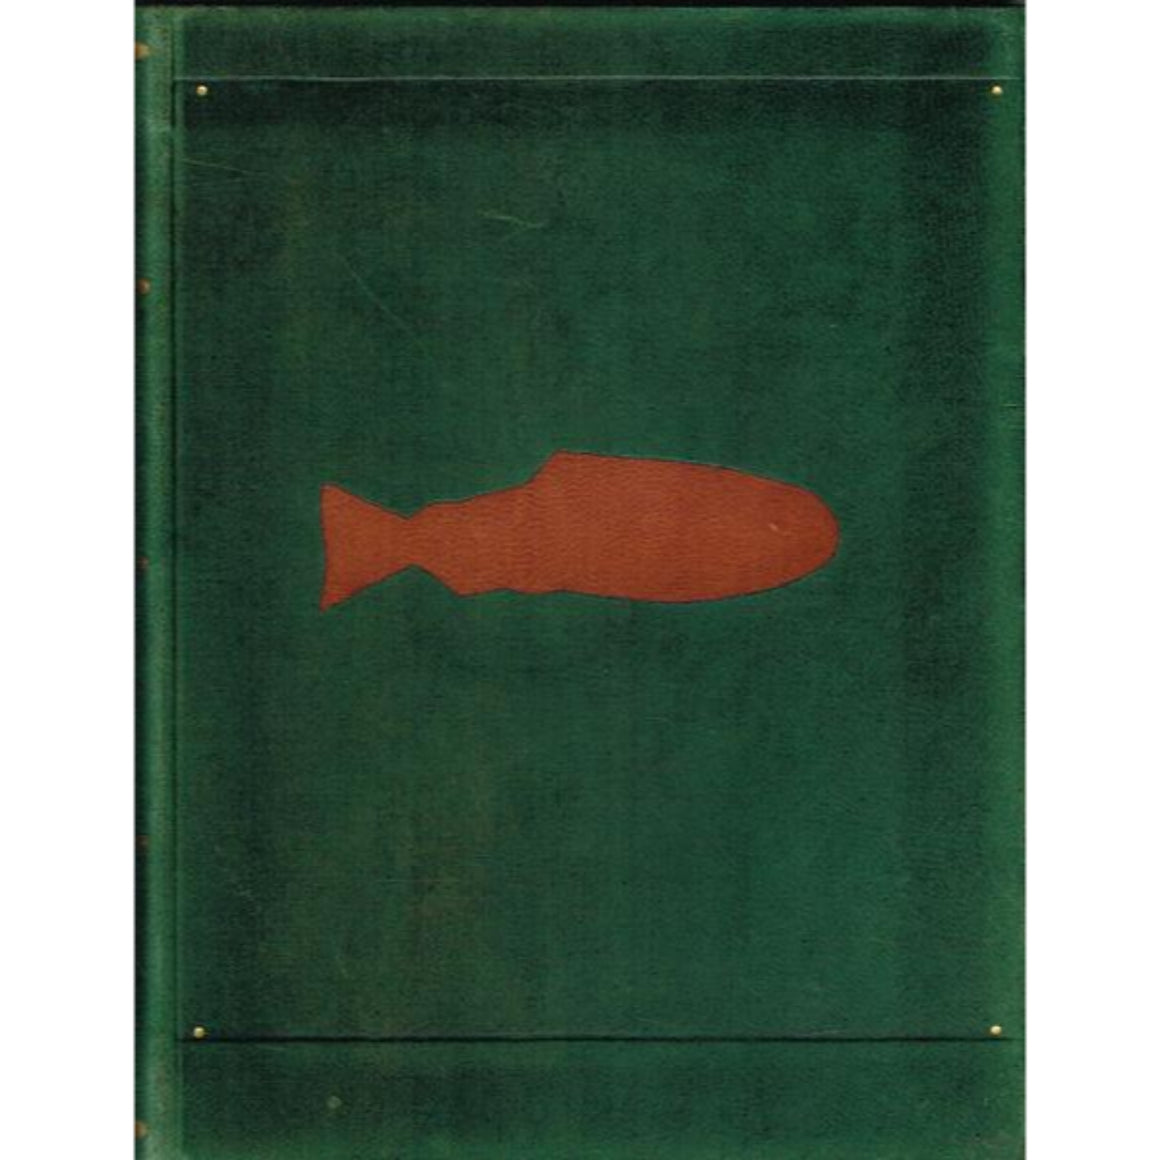 Green Morocco Leather Notebook w/ Fish Decoy